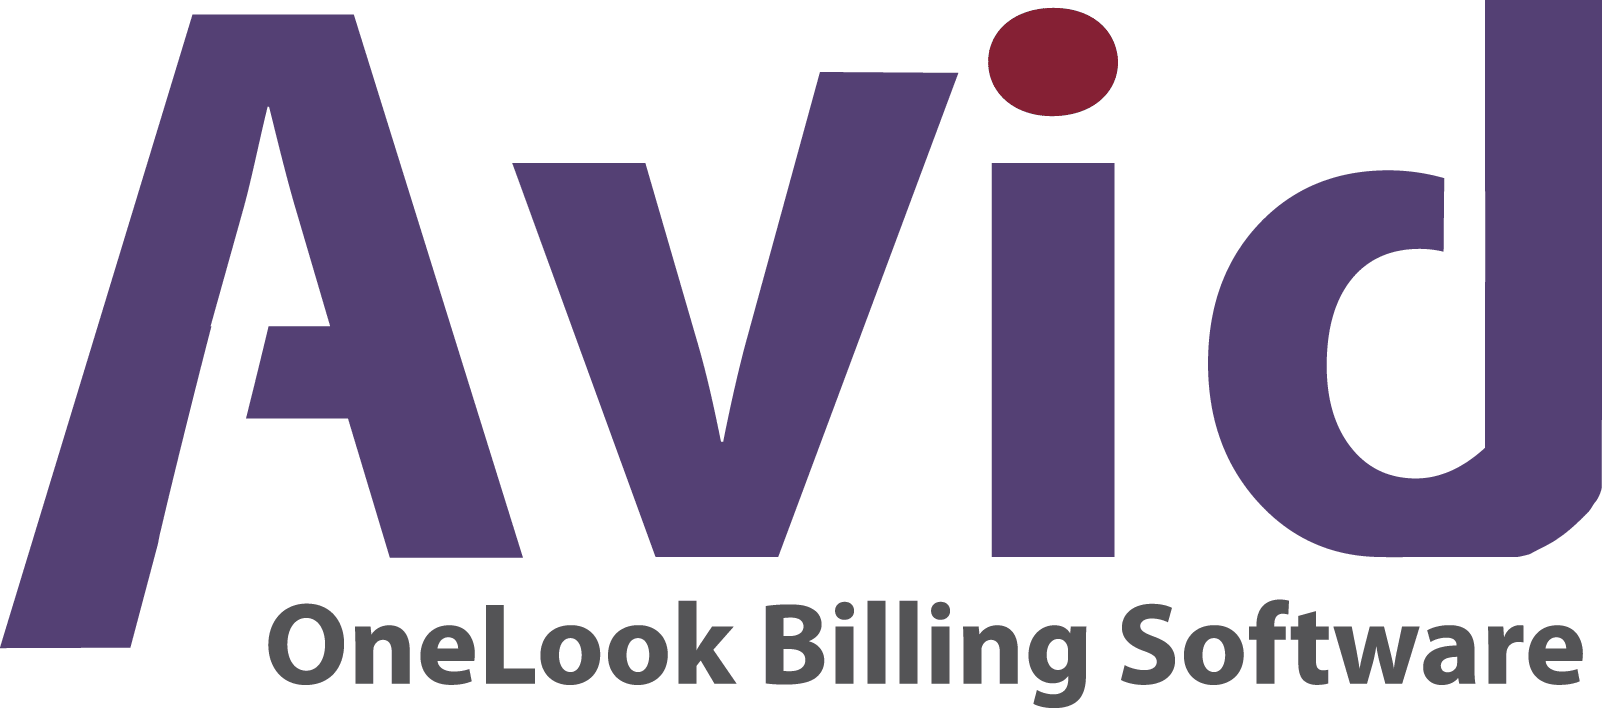 Avid OneLook Billing Software